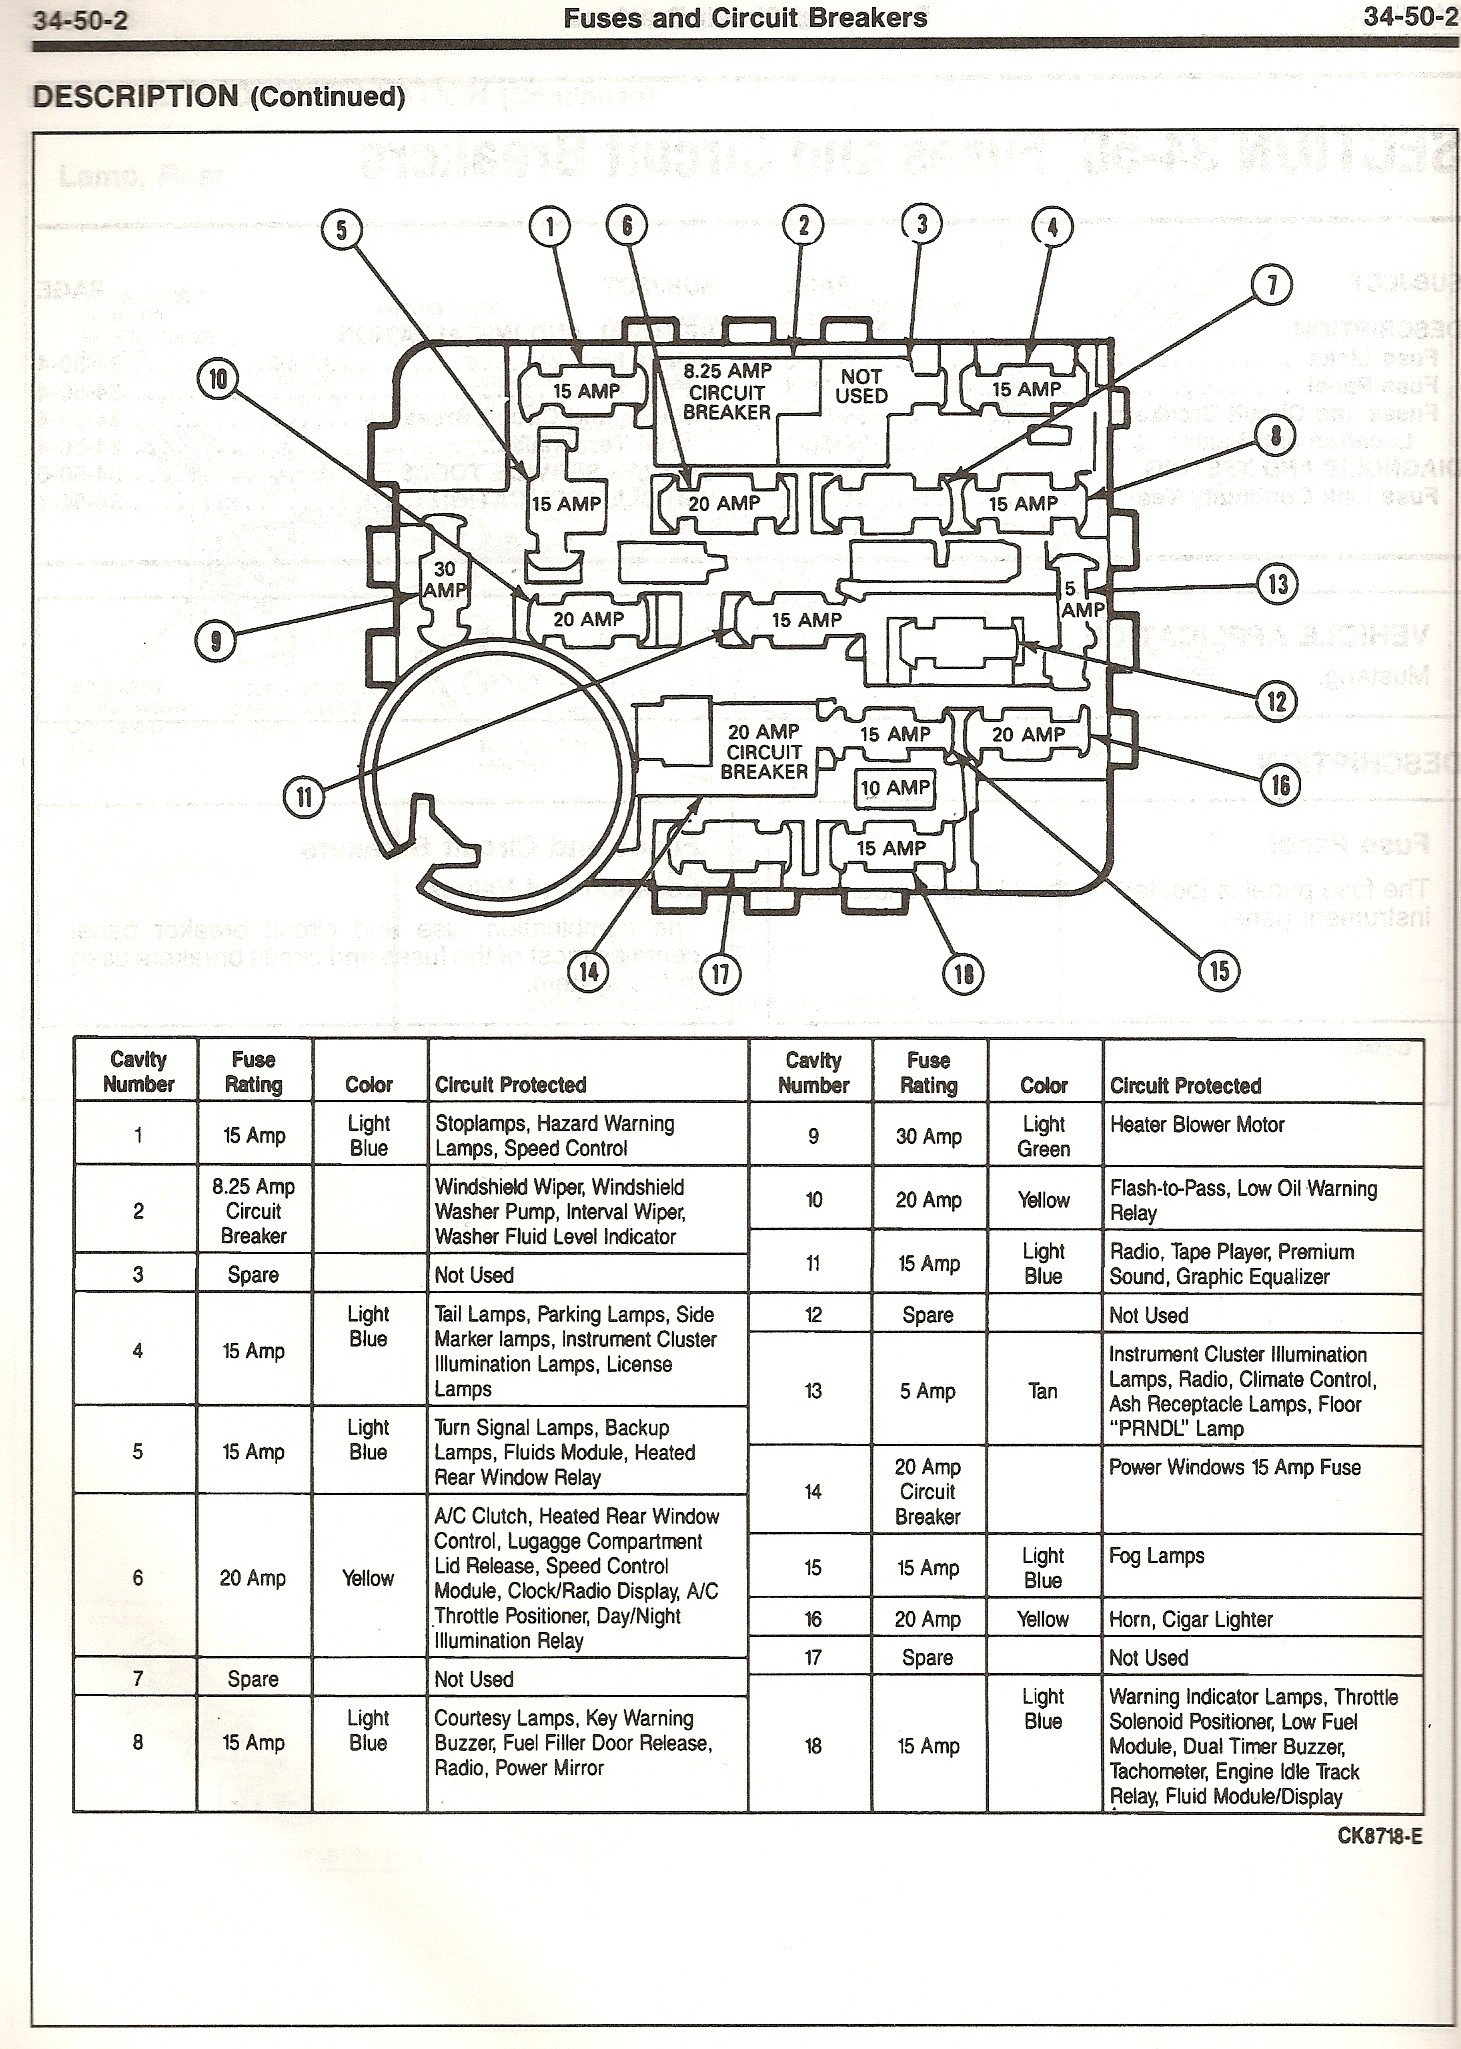 fuse diagram 1989 ford ranger 1989 ford taurus fuse box